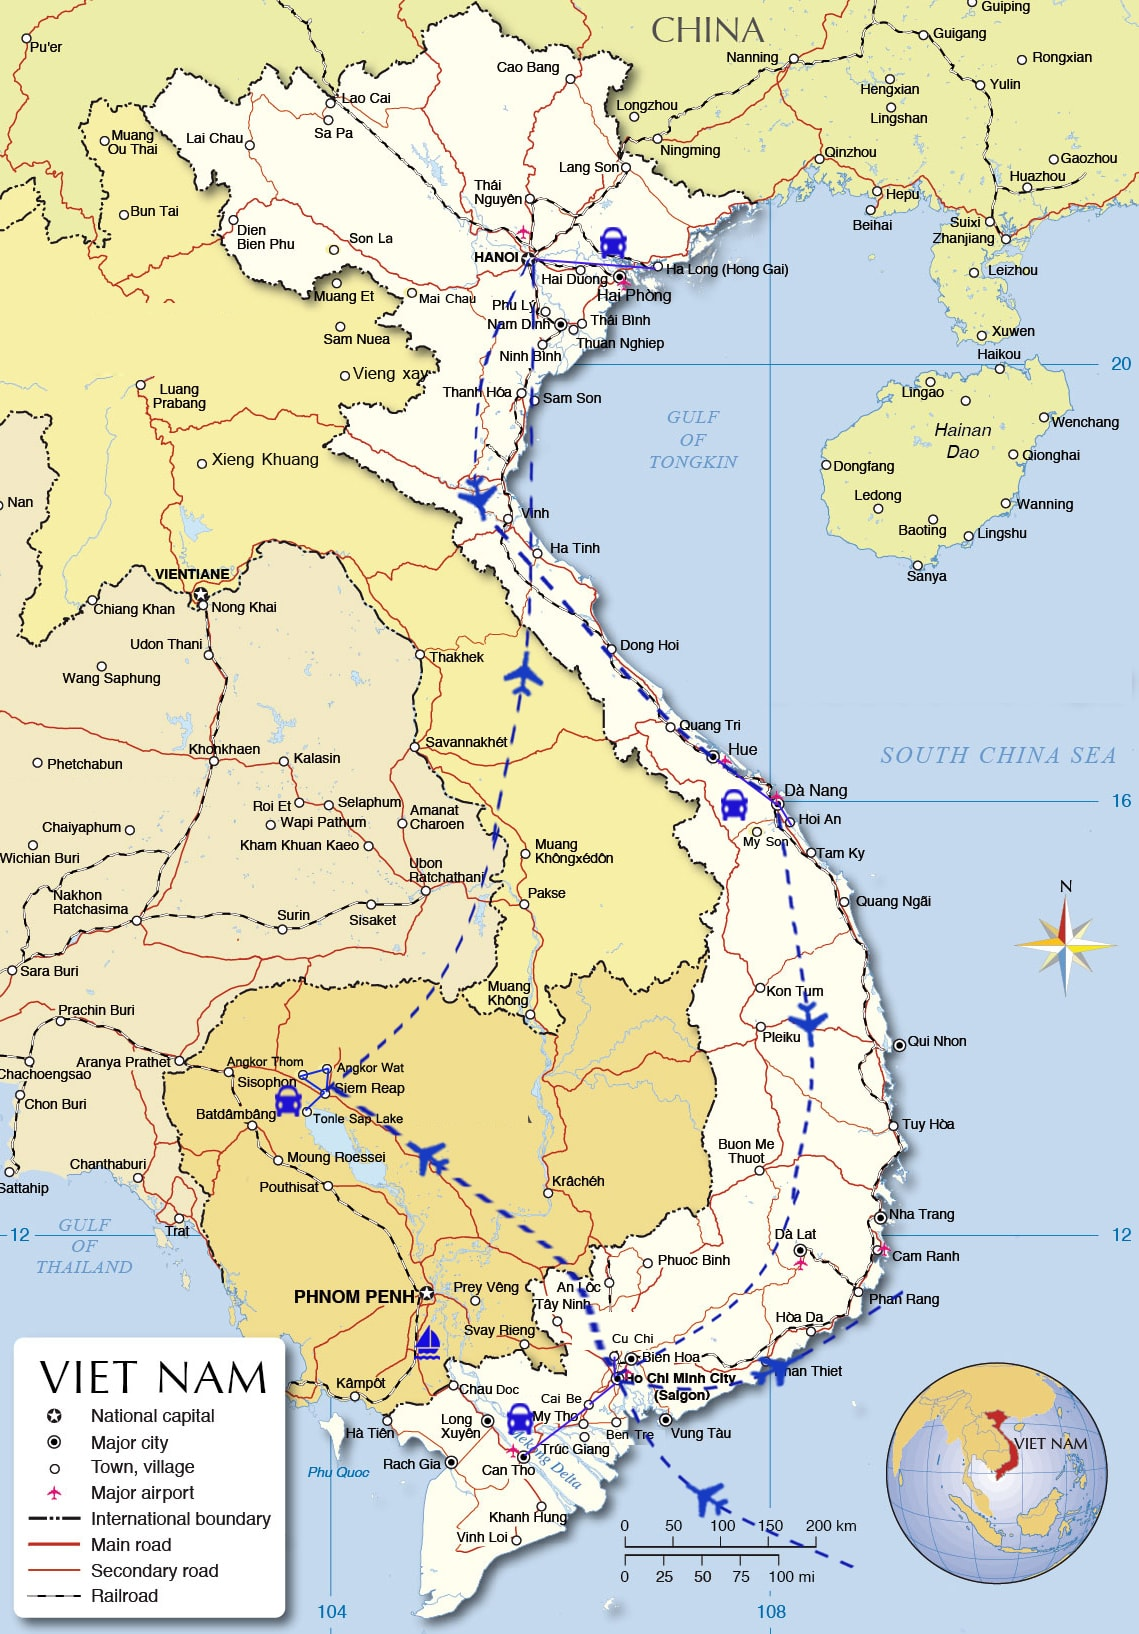 IFT05: Vietnam - Cambodia Tour at a Glance  - 15 days  from HCMC map